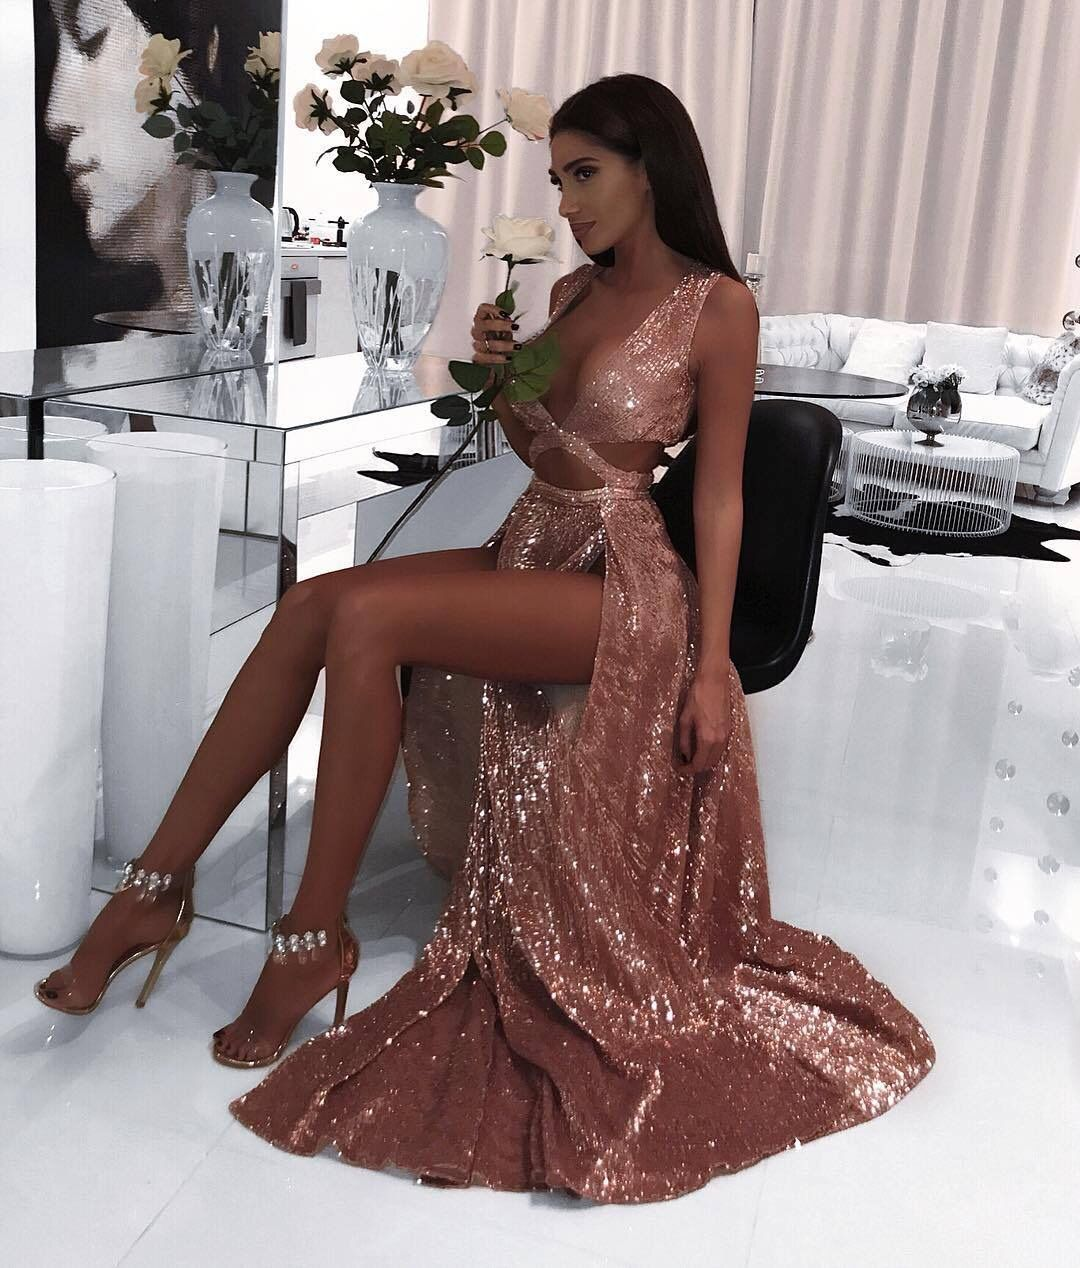 Greek Prom Dresses Uk Pictures Fashion Gallery: Pinterest@yourmainbitxh NewPinsDaily